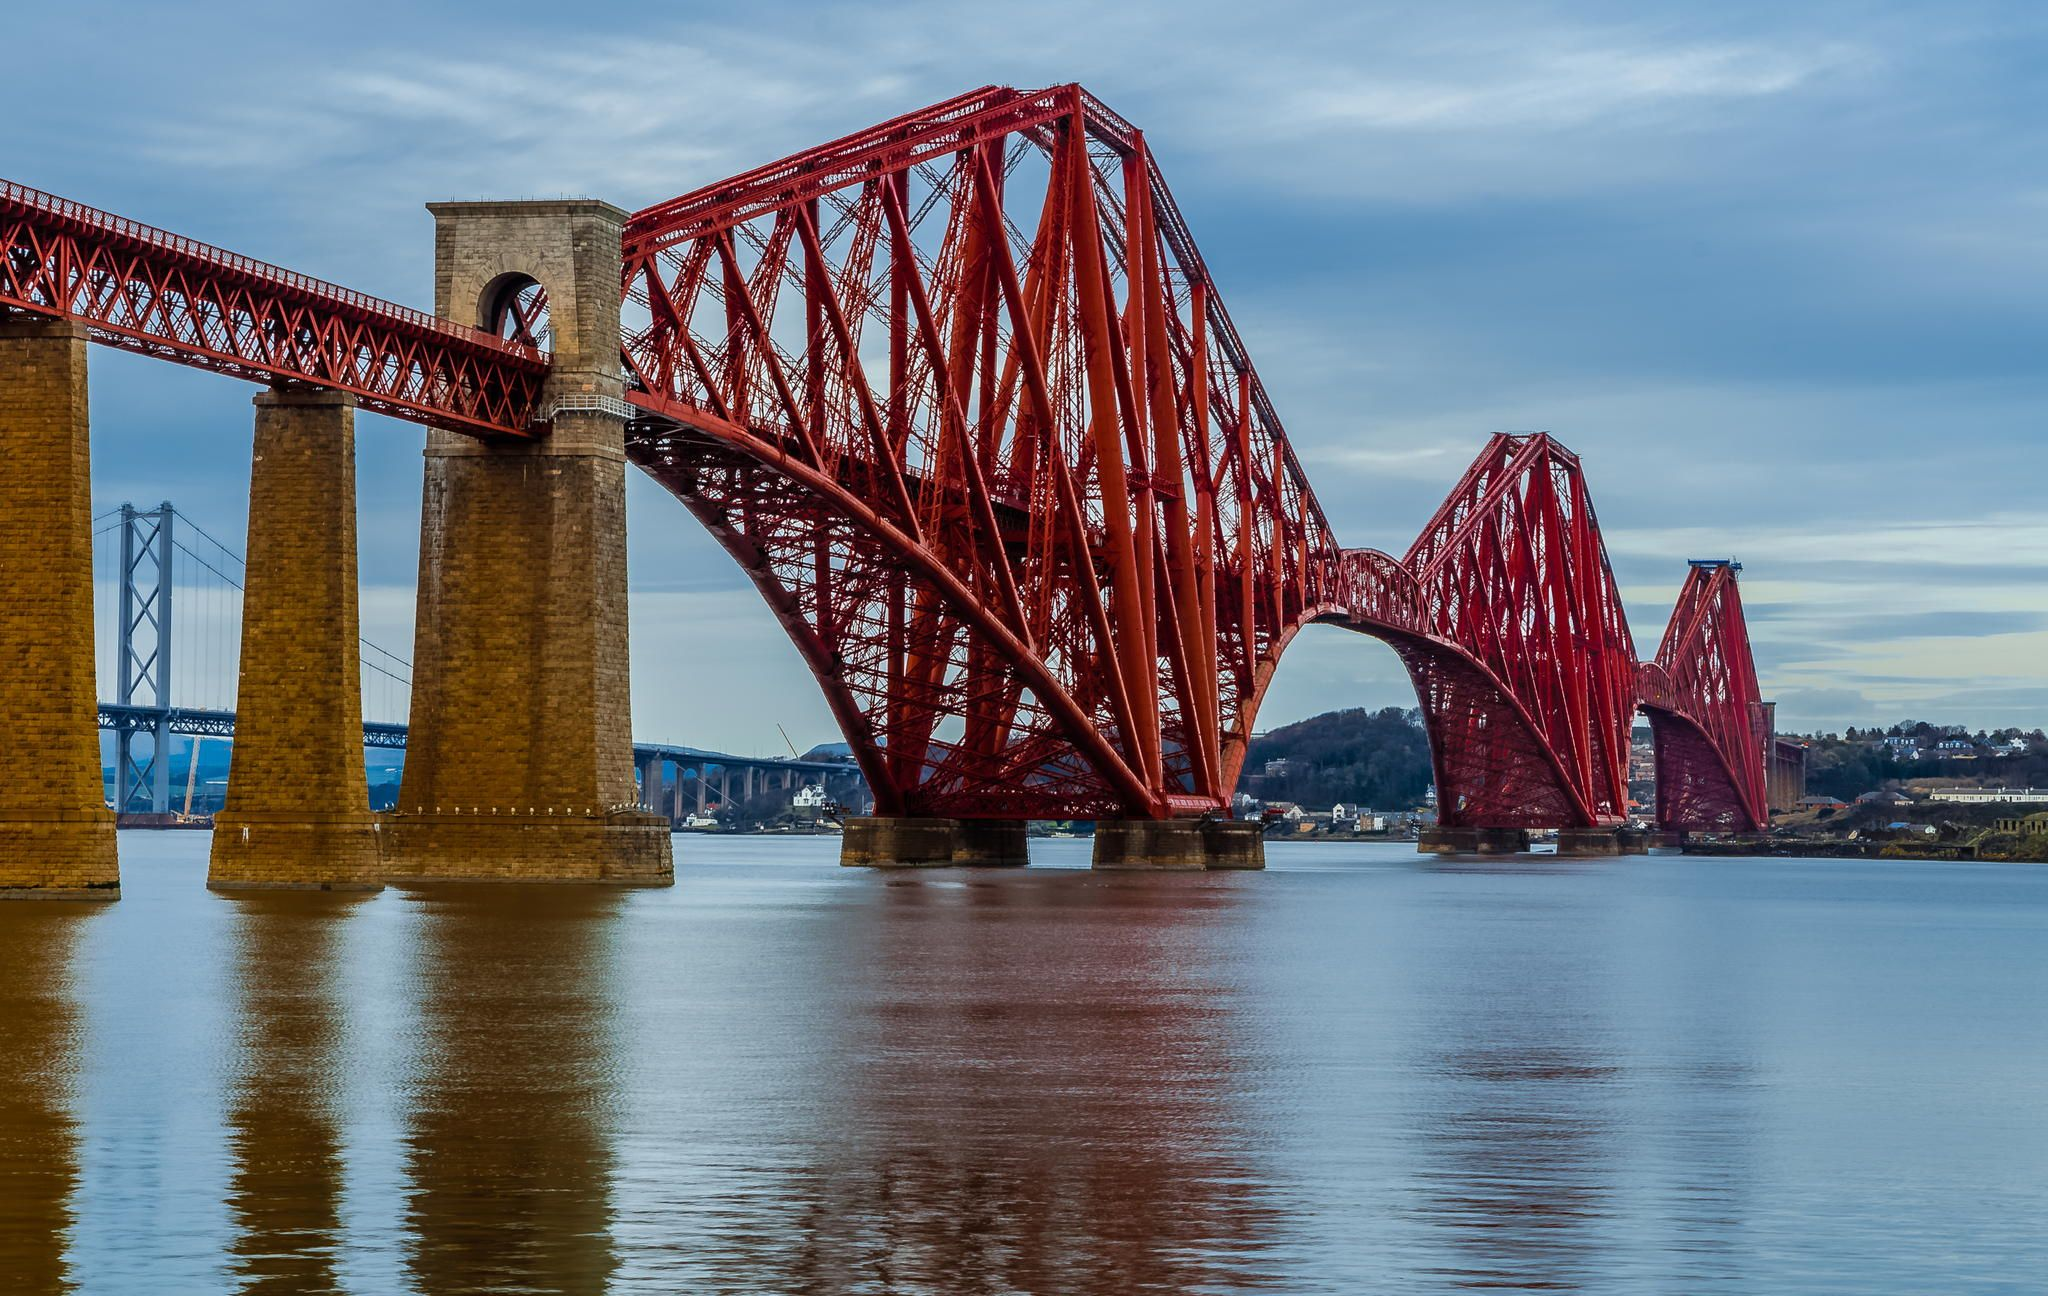 Photograph The Forth bridge during the day by Graeme Ross on 500px